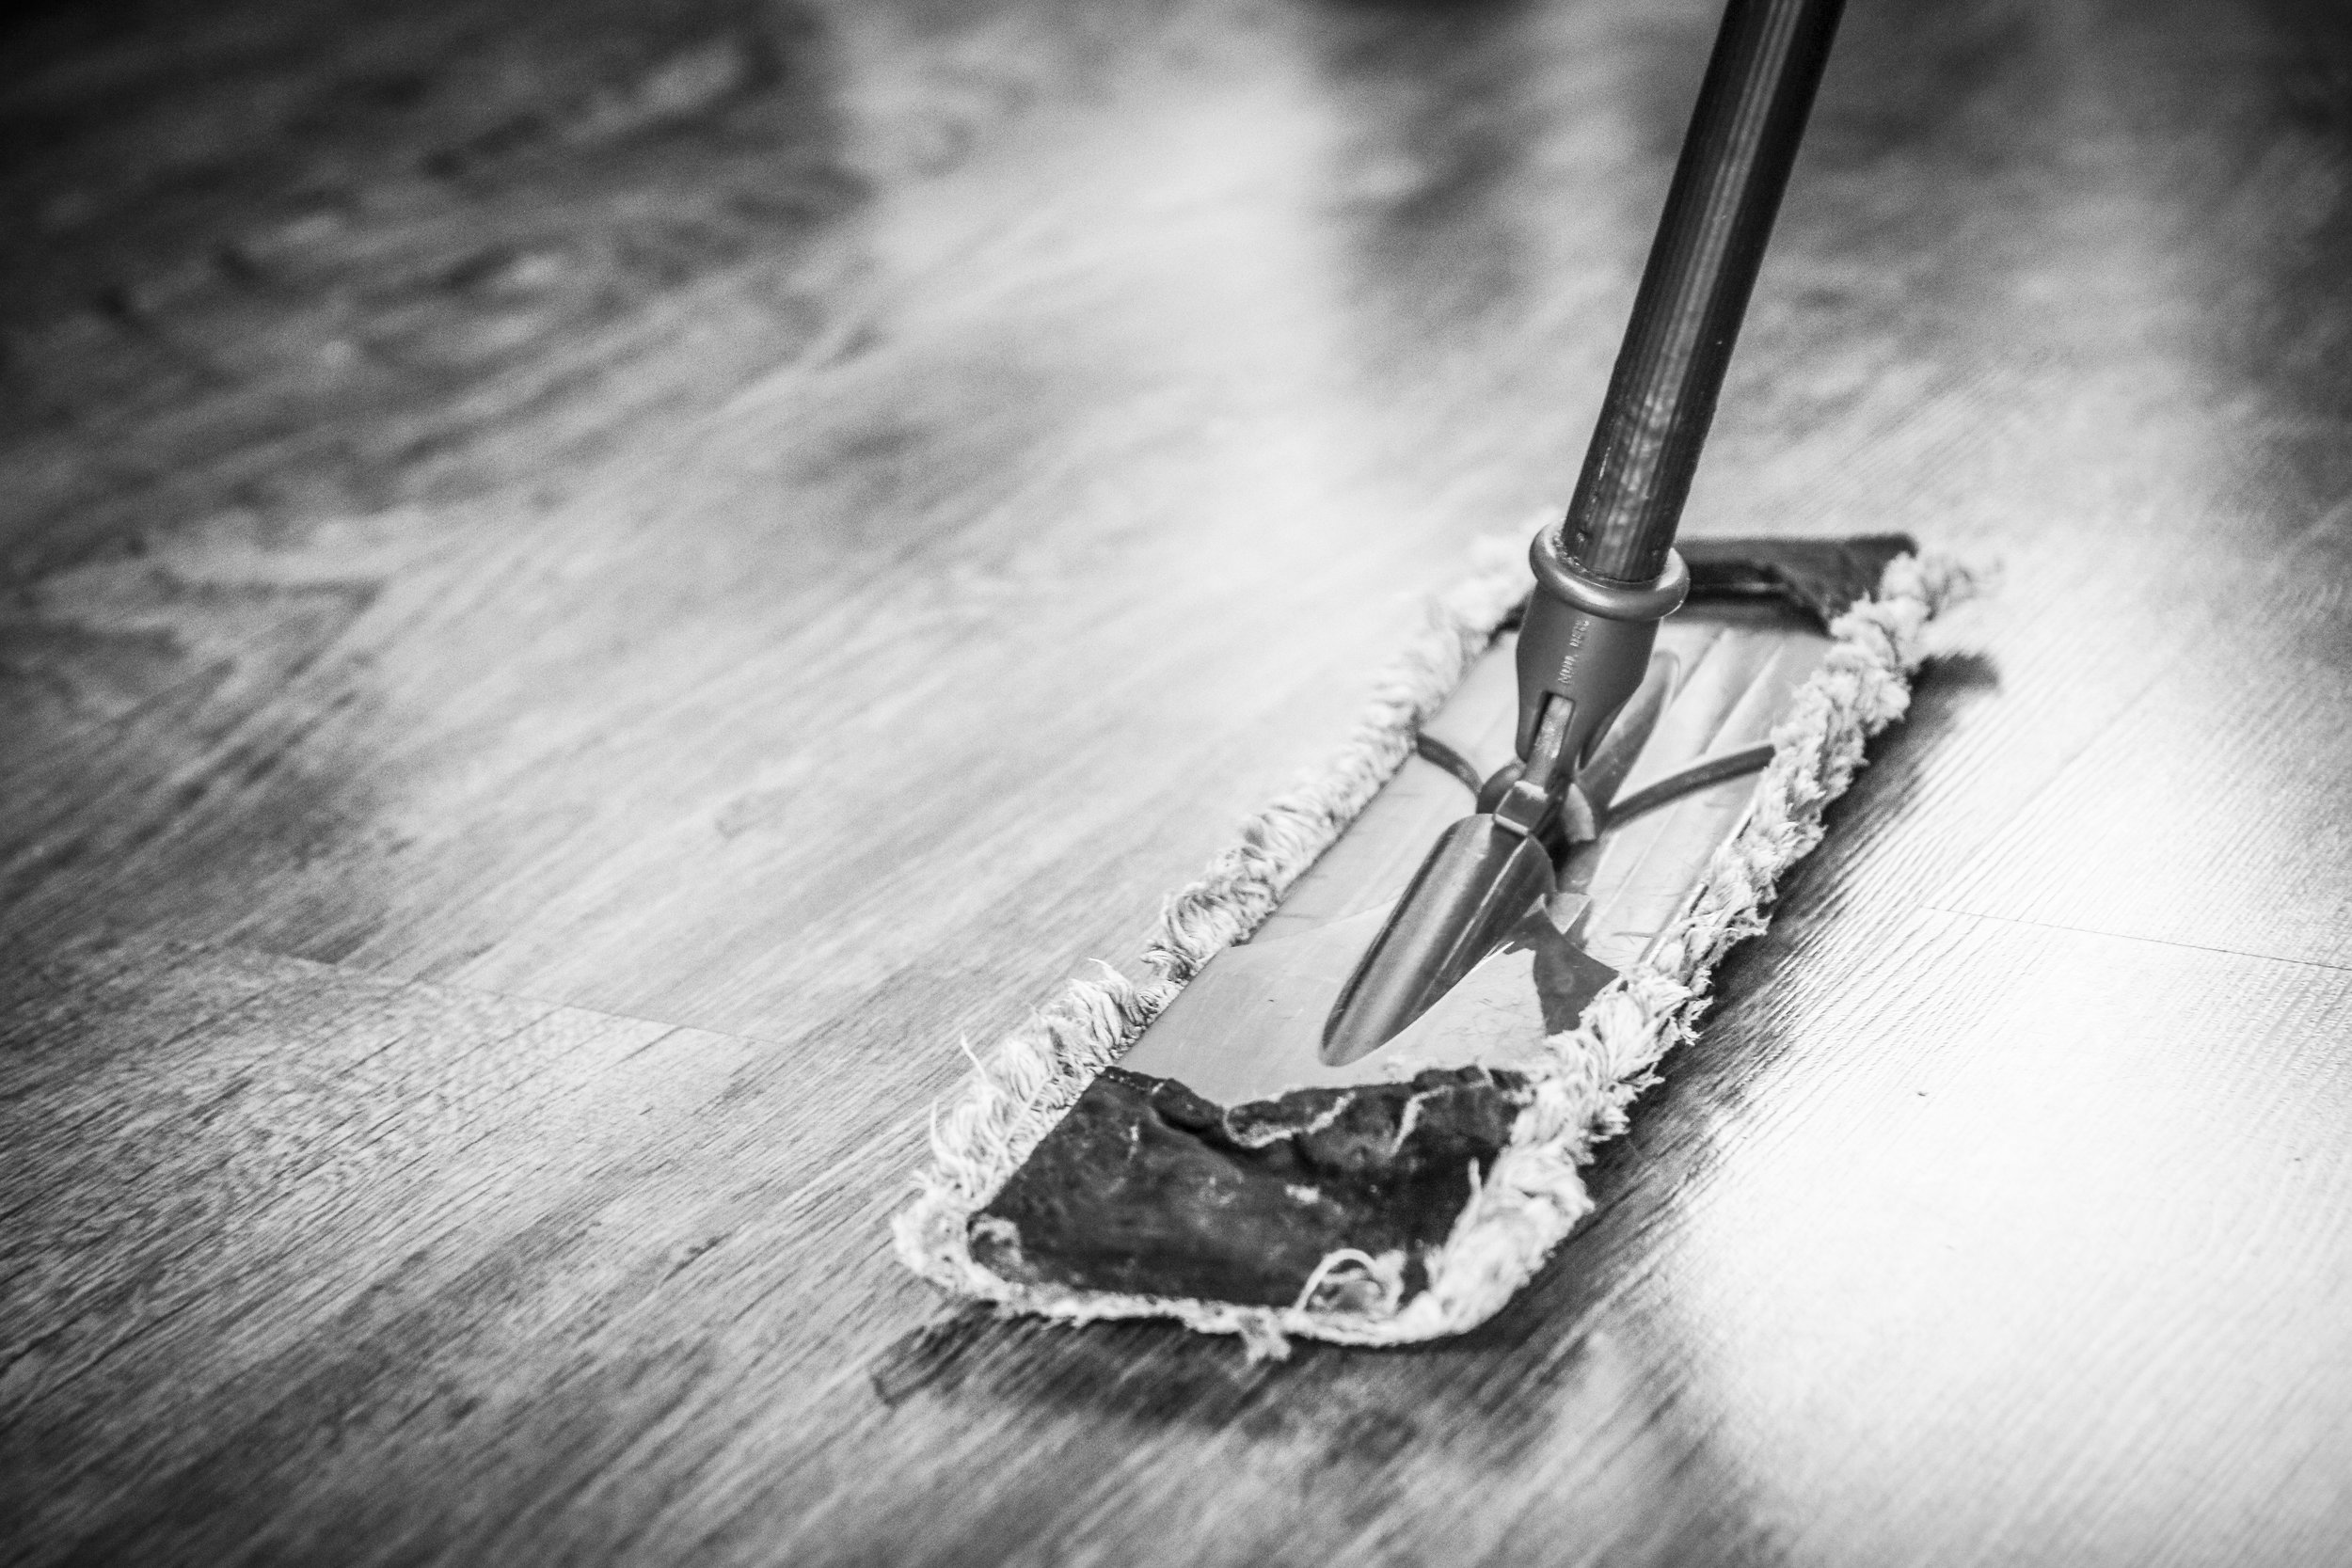 HOME & GROUNDS TEAM   Keep our building and the surrounding area beautiful through weekly grounds (indoor and outdoor) housekeeping and maintenance, as well as coordinating seasonal church-wide cleanup initiatives.